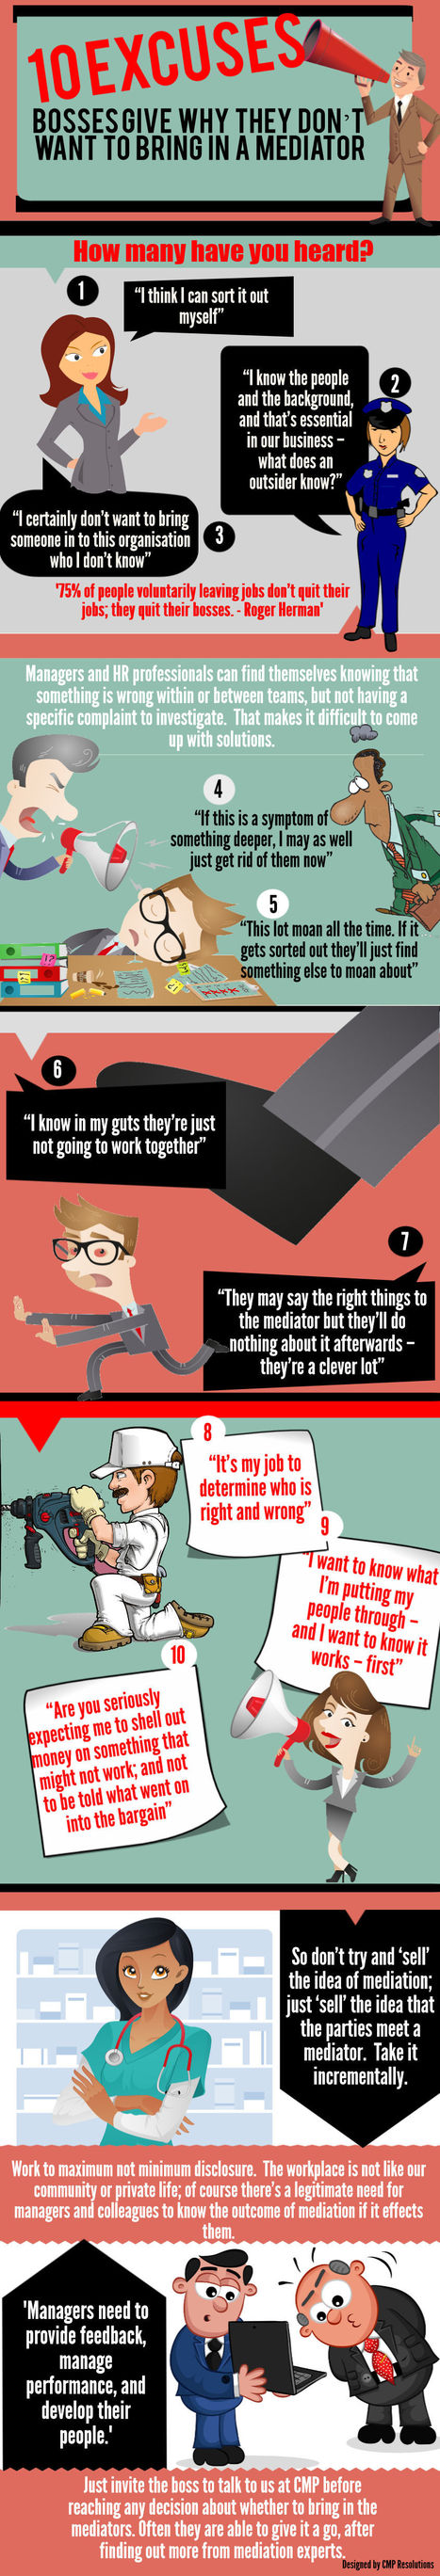 Infographic: 10 excuses bosses give not to bring in a mediator | Mediation | Scoop.it